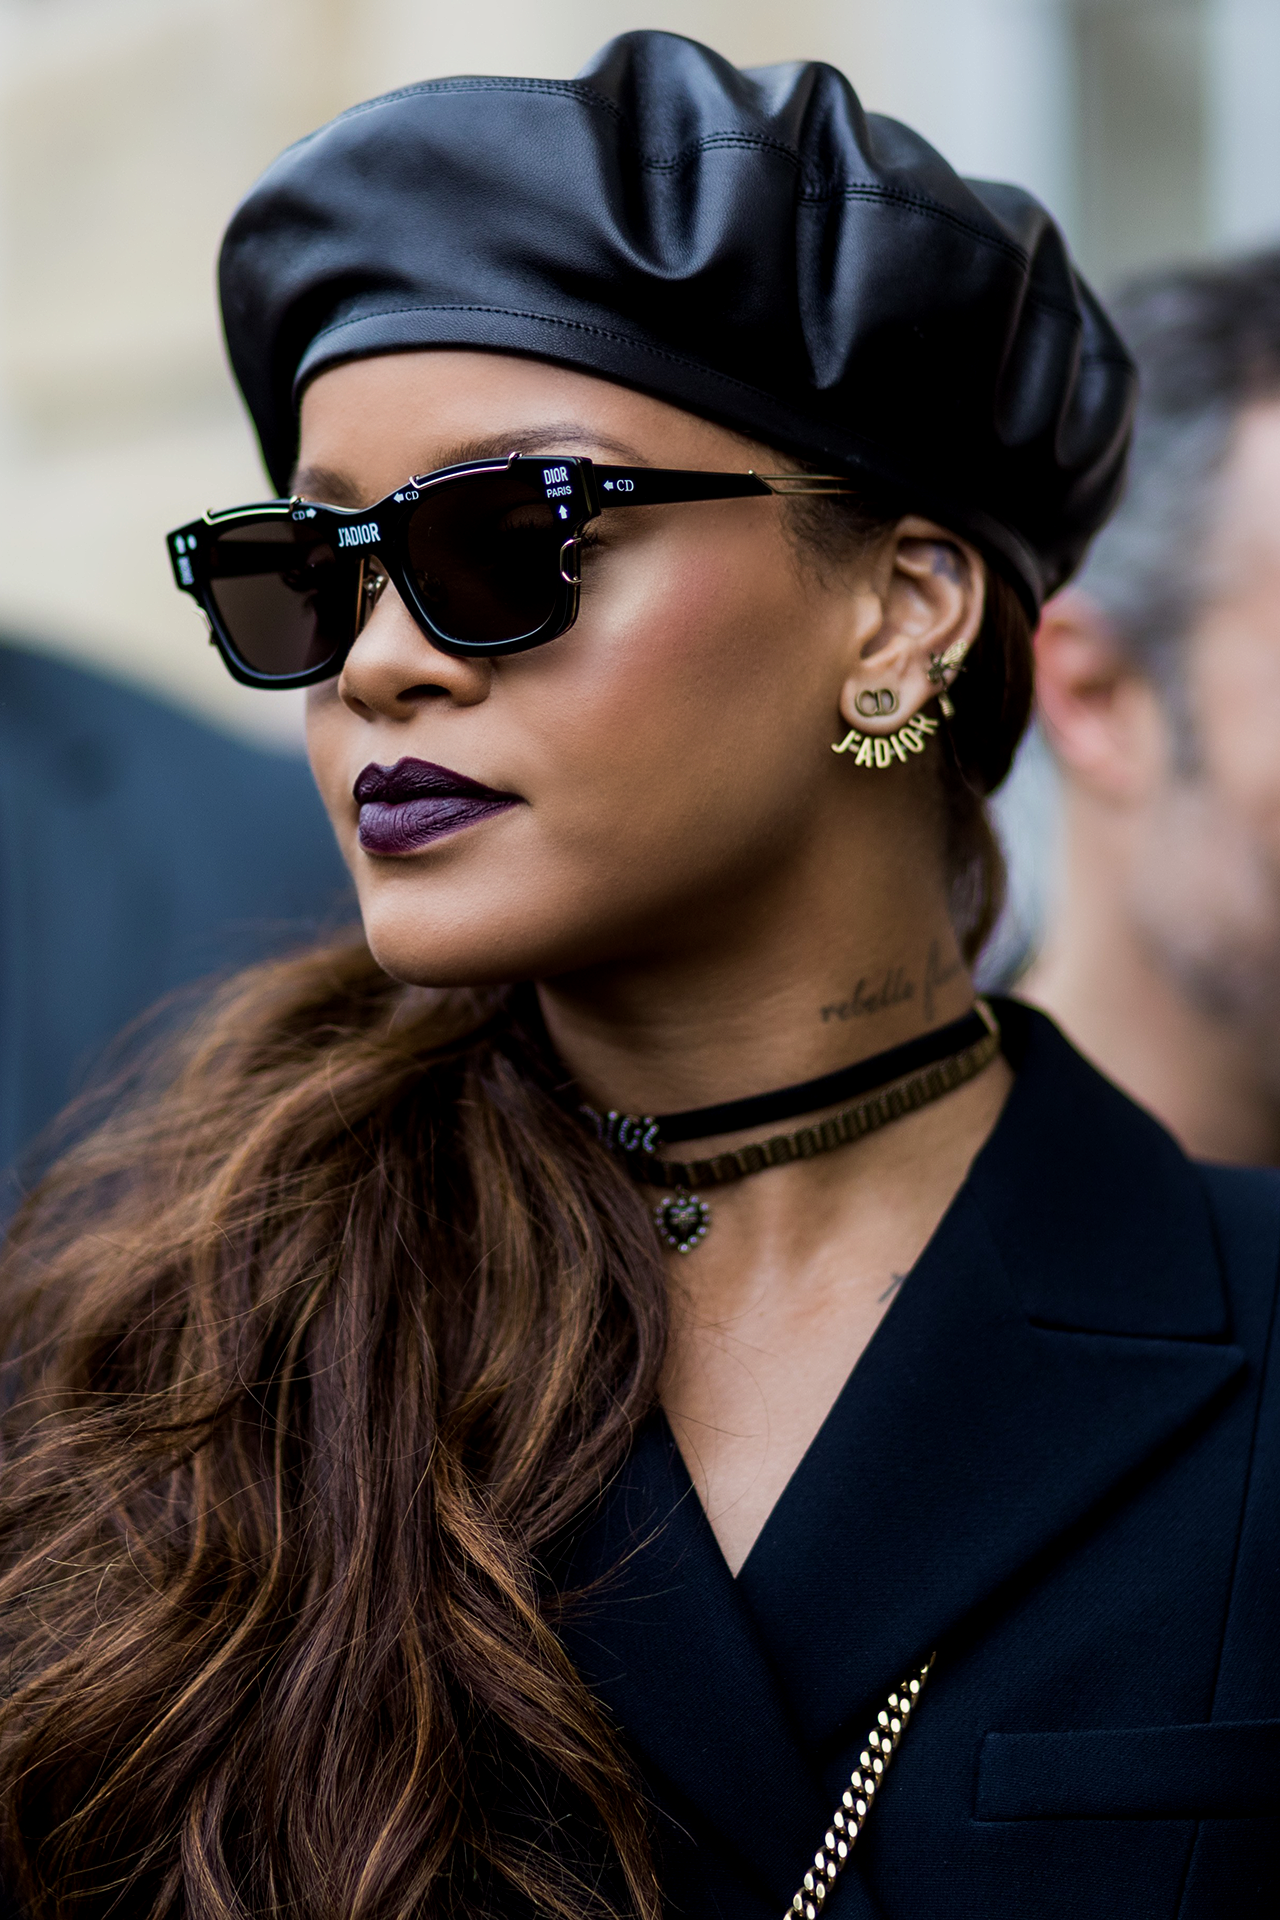 436f493e75 Find a Choker necklace like the one Rihanna was spotted wearing at the  Paris Fashion Week March 3